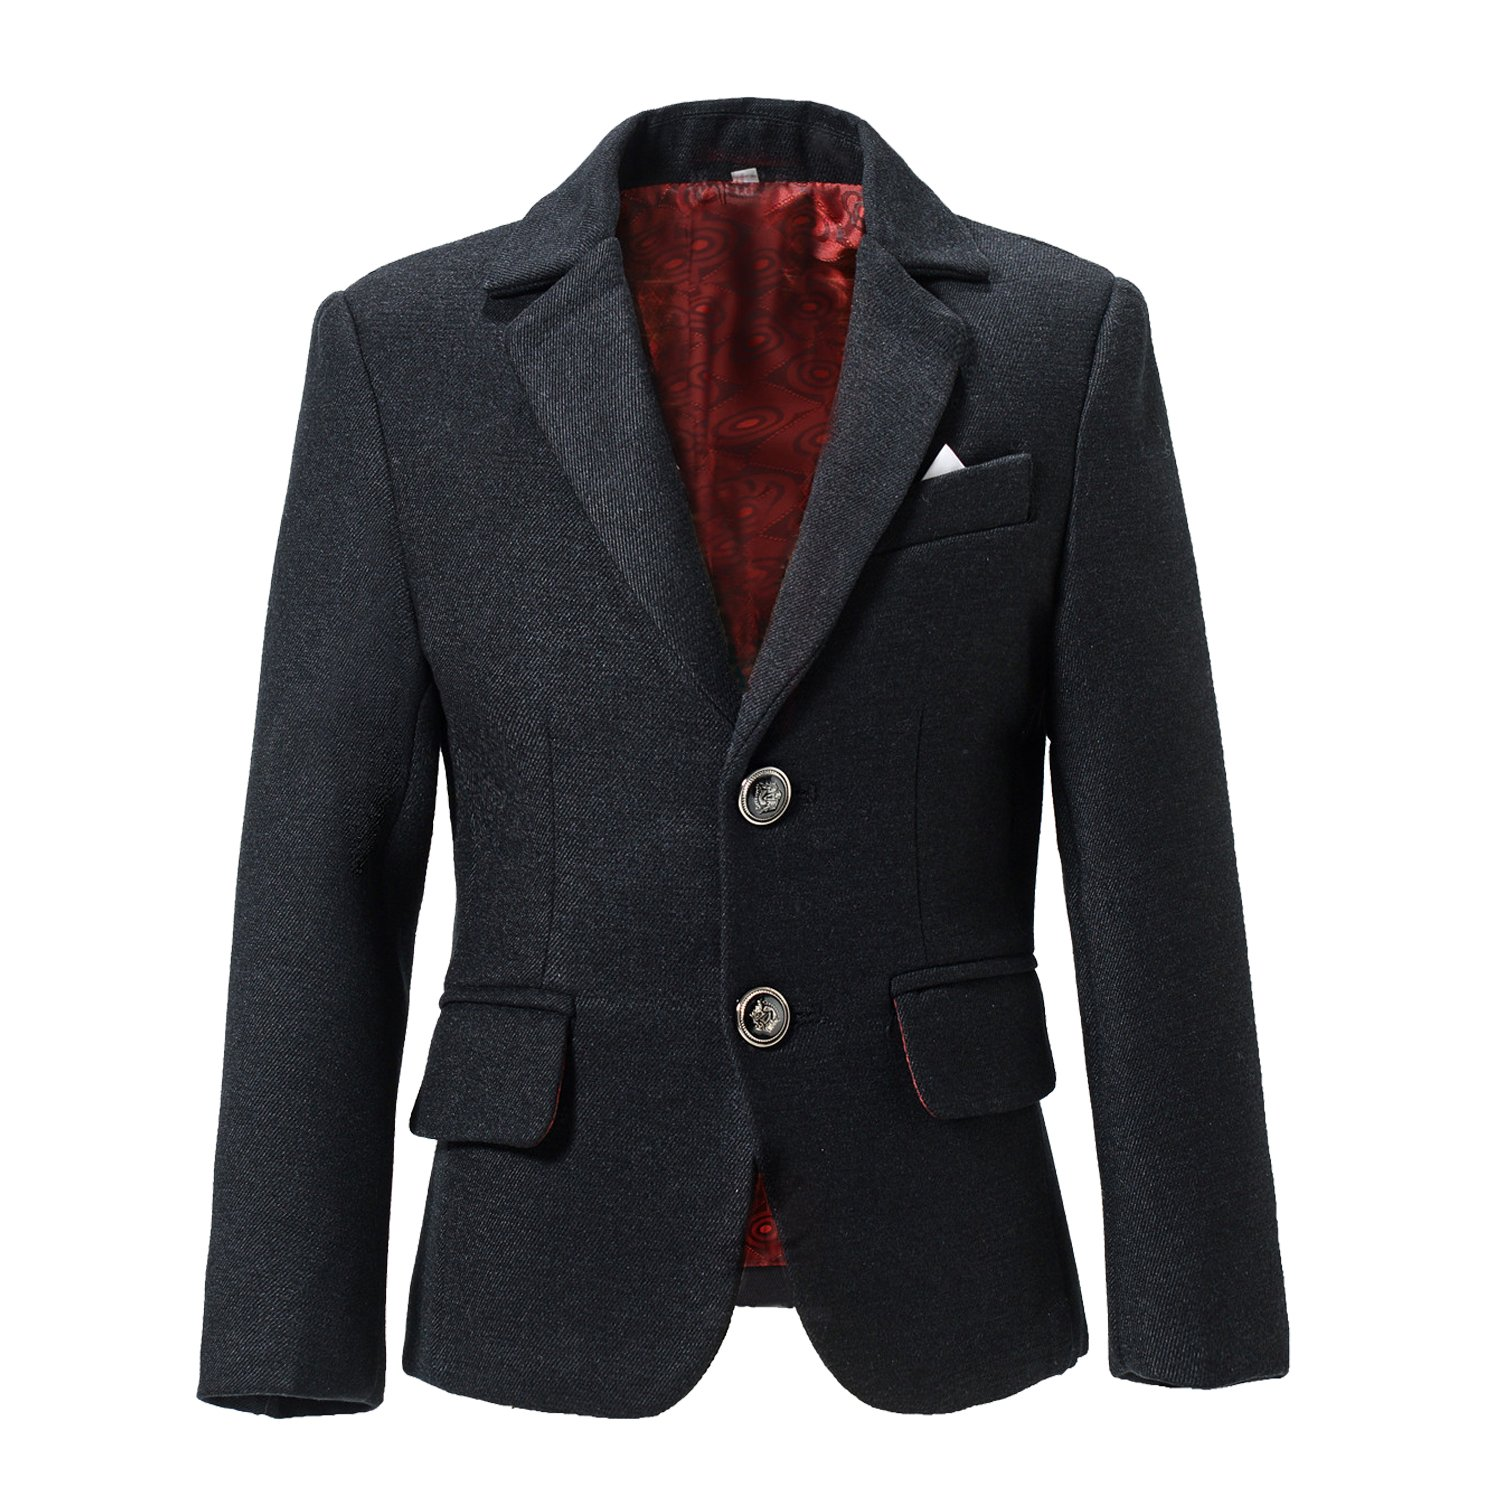 Yuanlu Woolen Look Young Boys Outfit Jacket Kids Dress Wear Blazer YLuBlazer04